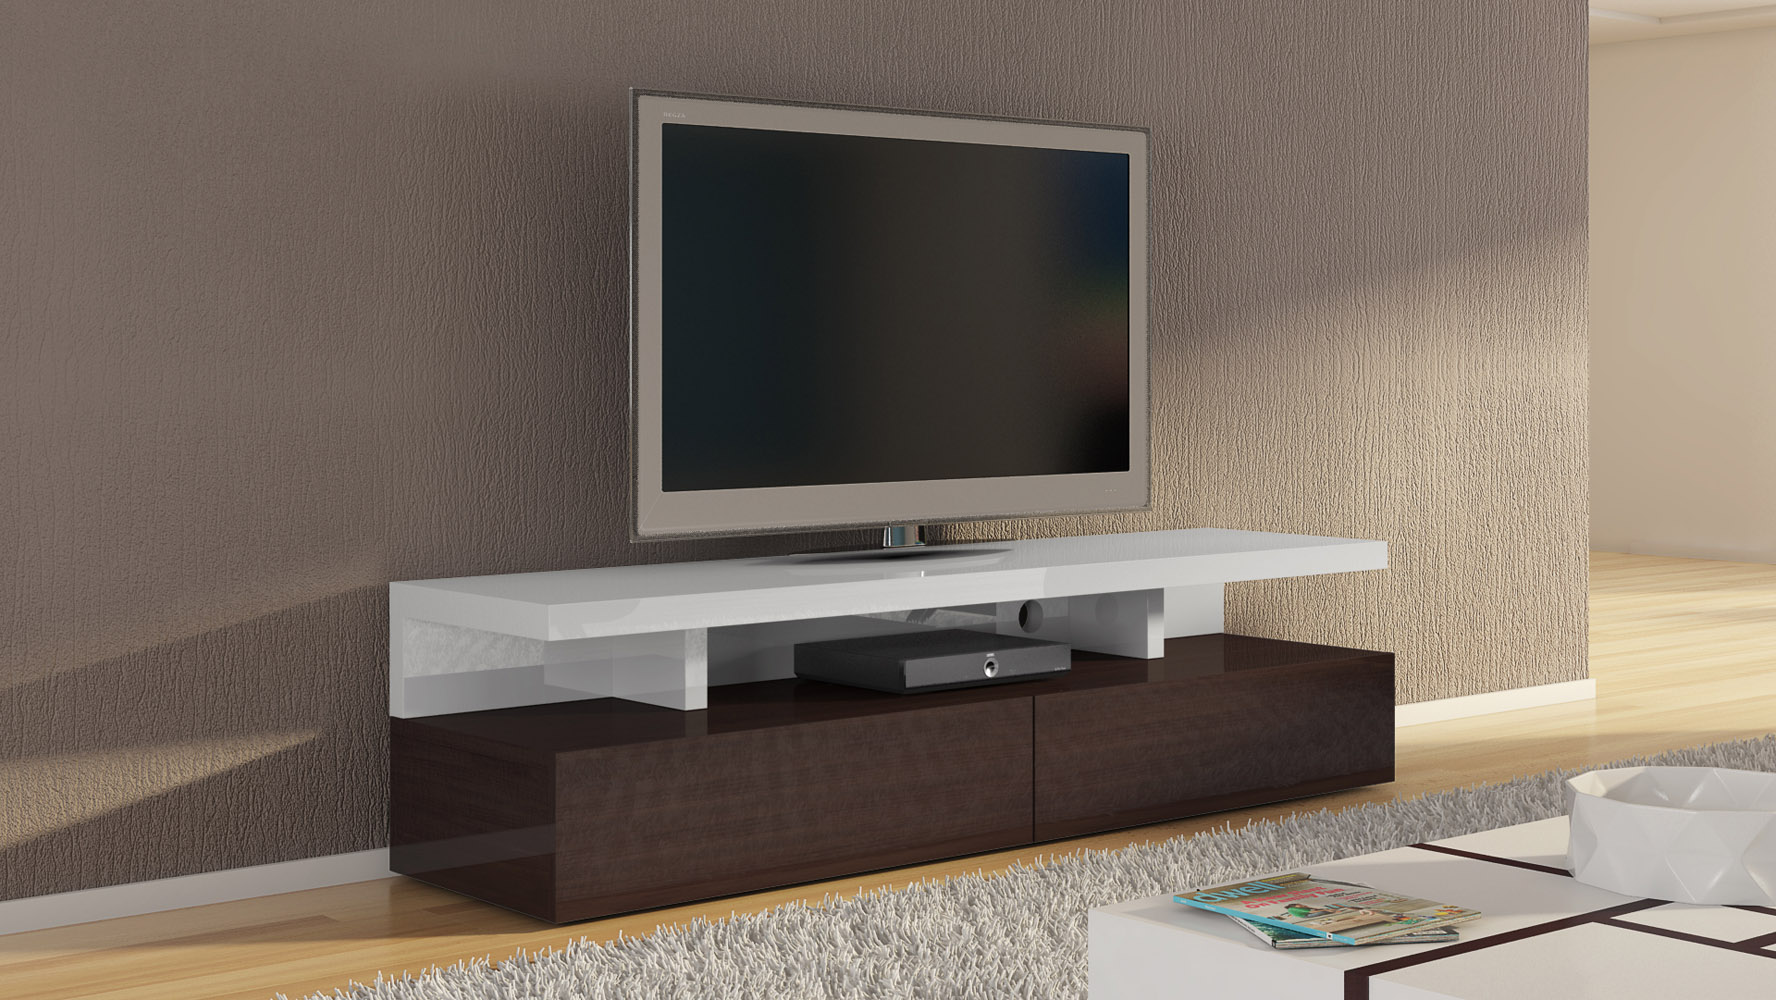 Mcintosh 71 Inch Tv Stand In White High Gloss And Ebony